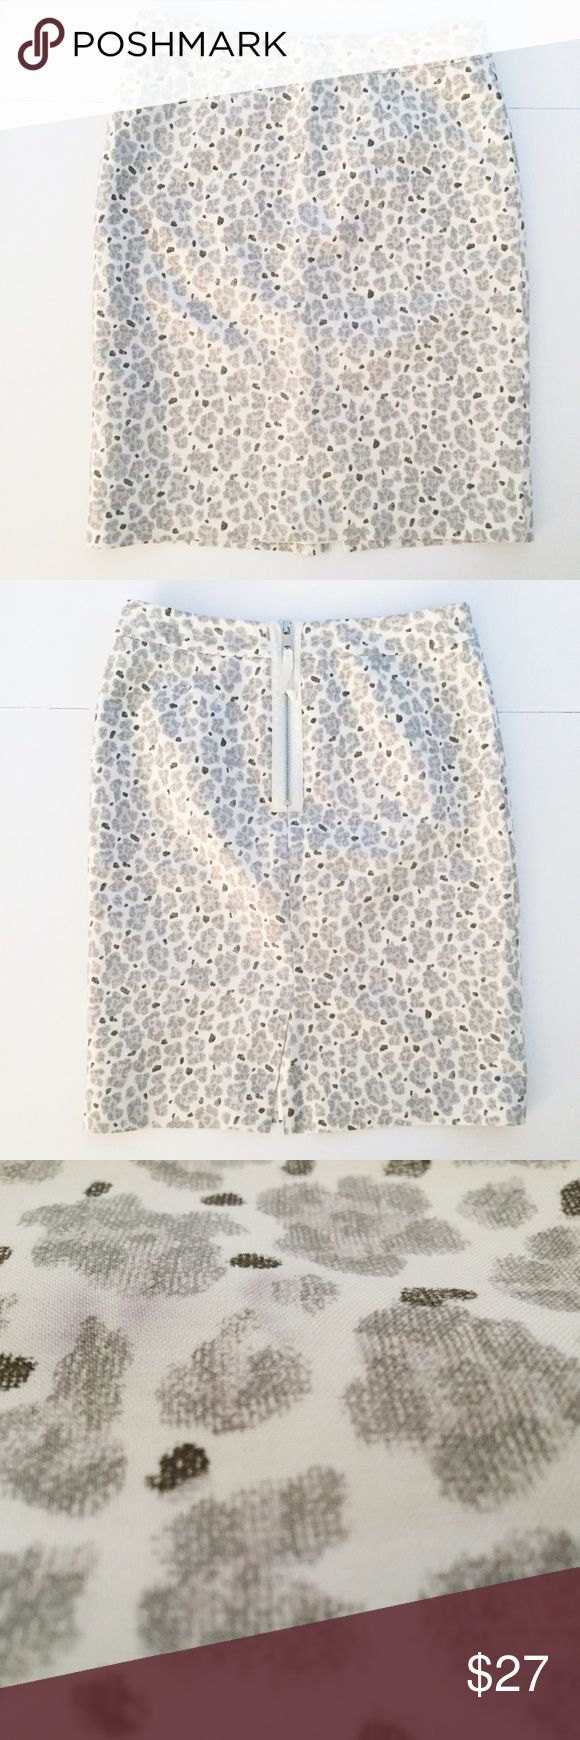 "LOFT Gray & White Animal Print Pencil Skirt 0 LOFT Silk Blend pencil skirt! White and Gray/Grey taupe Animal Print - leopard - cheetah. 19 3/4"" long, waist 13 3/4"", hem 17 3/4"" across, back slit 5"", back zipper 7 1/4"" long. Lined. Shell: 75% cotton and 25% Silk. Lining: 100% acetate. Silk Blend needs dry cleaning. Great overall condition. NO TRADES. LOFT Skirts Pencil"